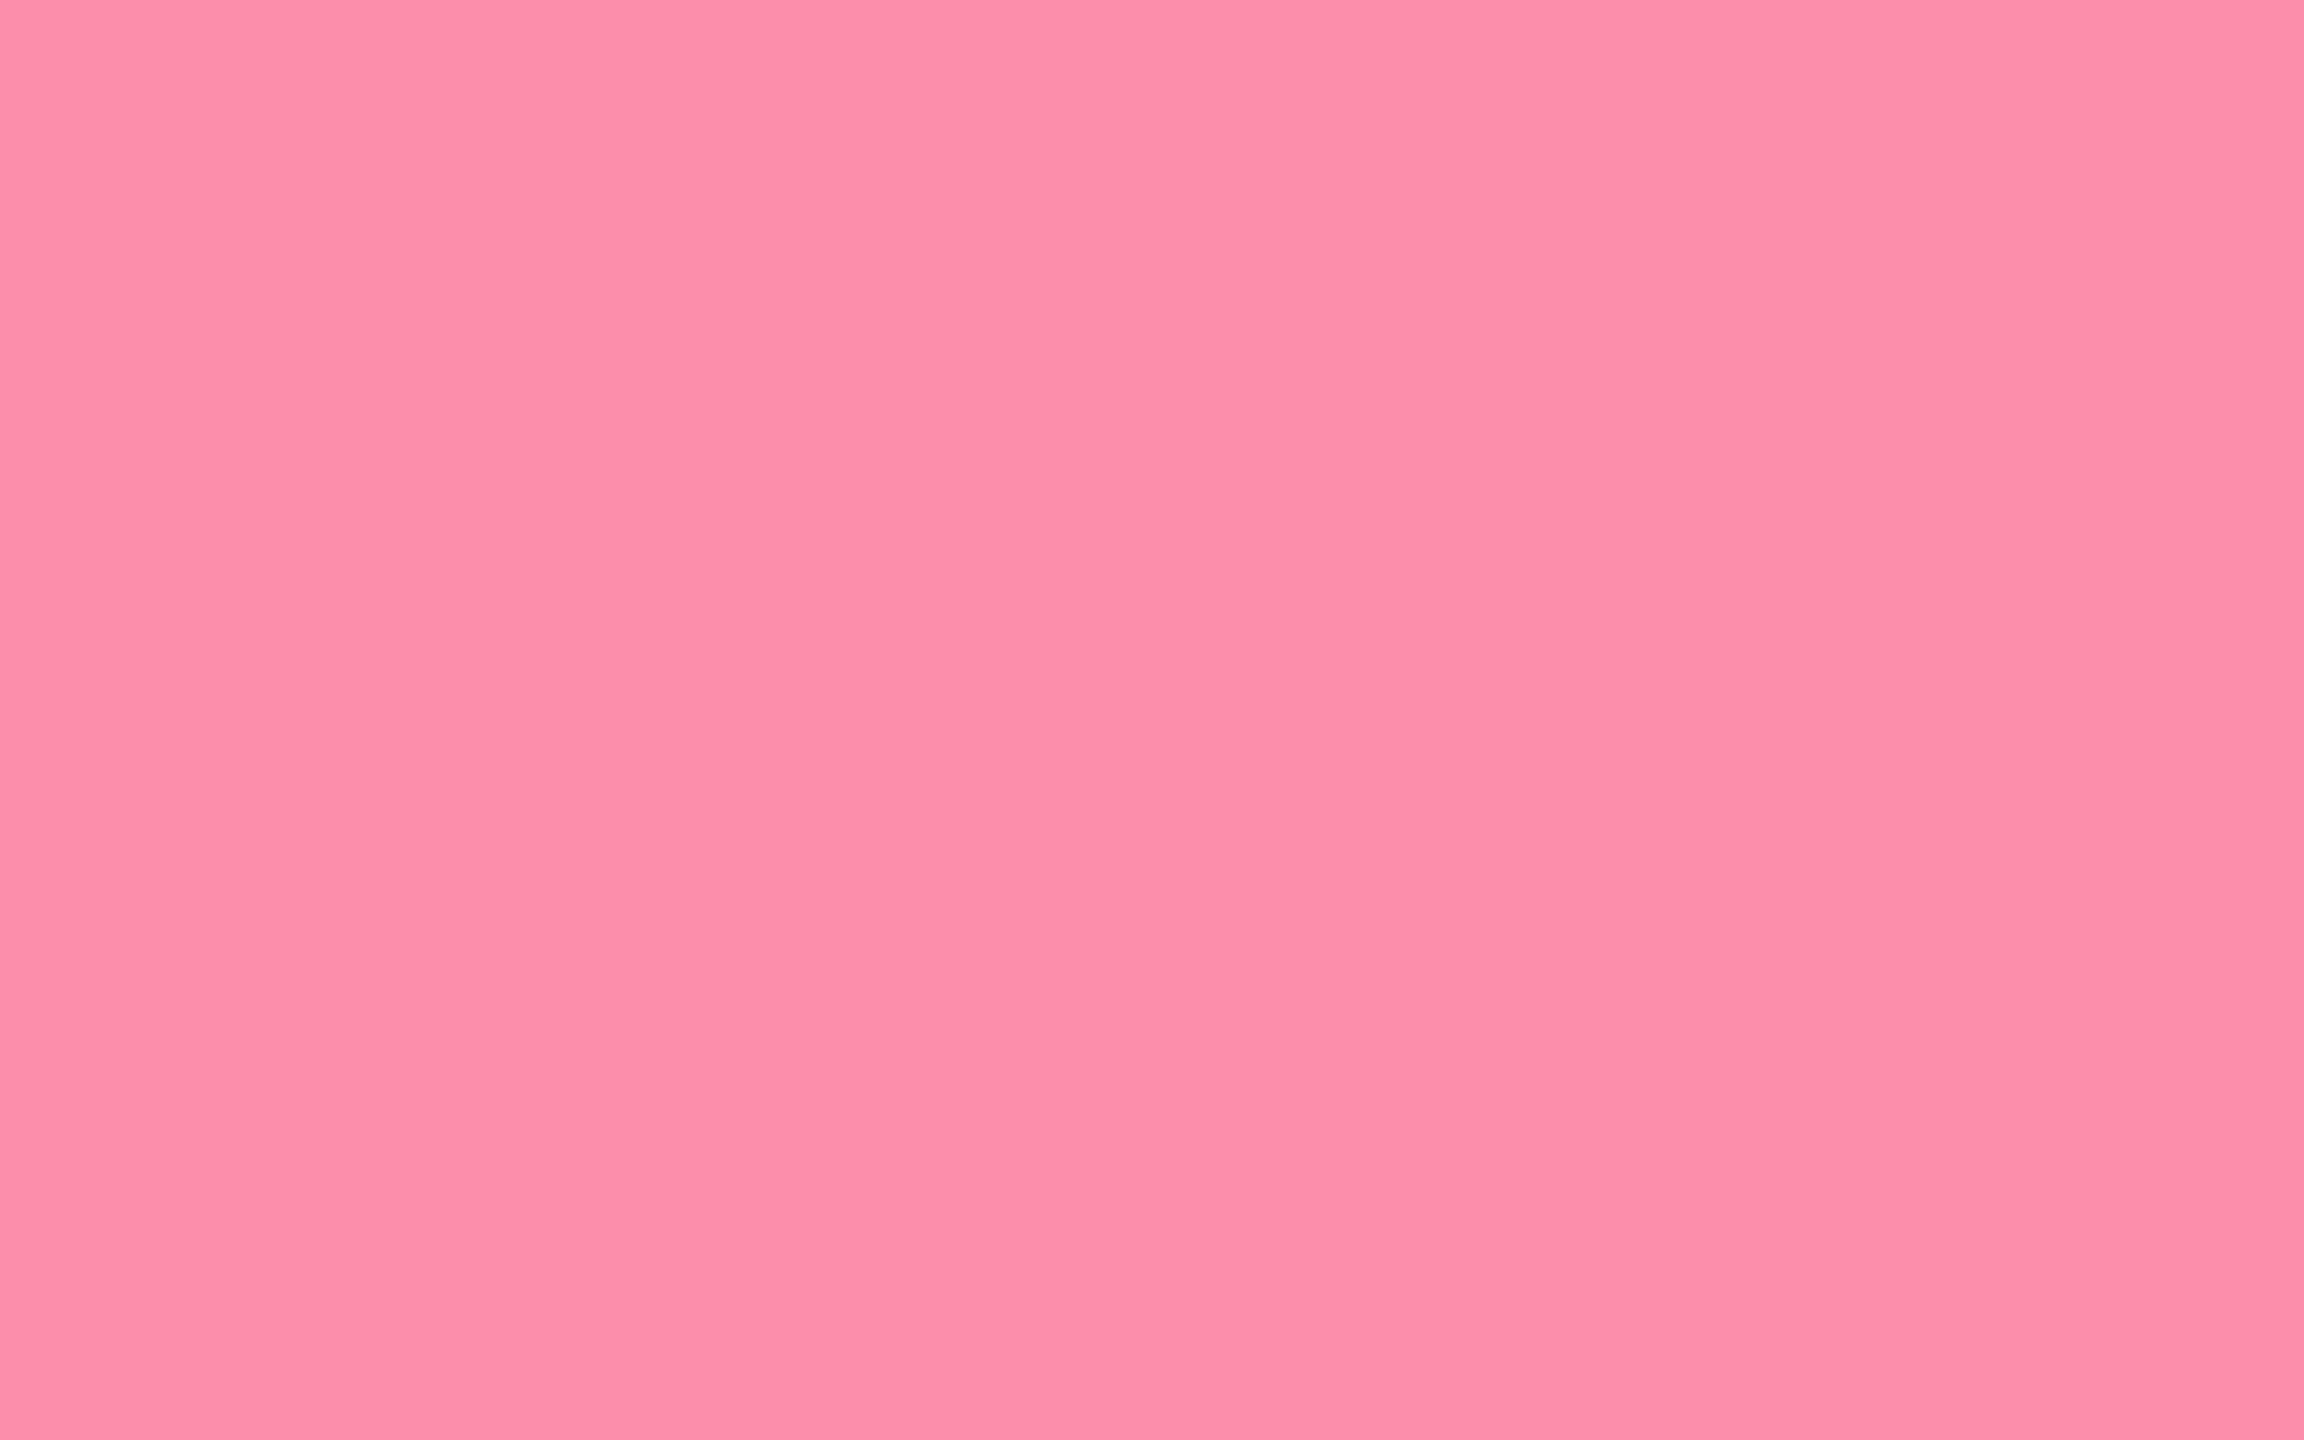 2304x1440 Flamingo Pink Solid Color Background